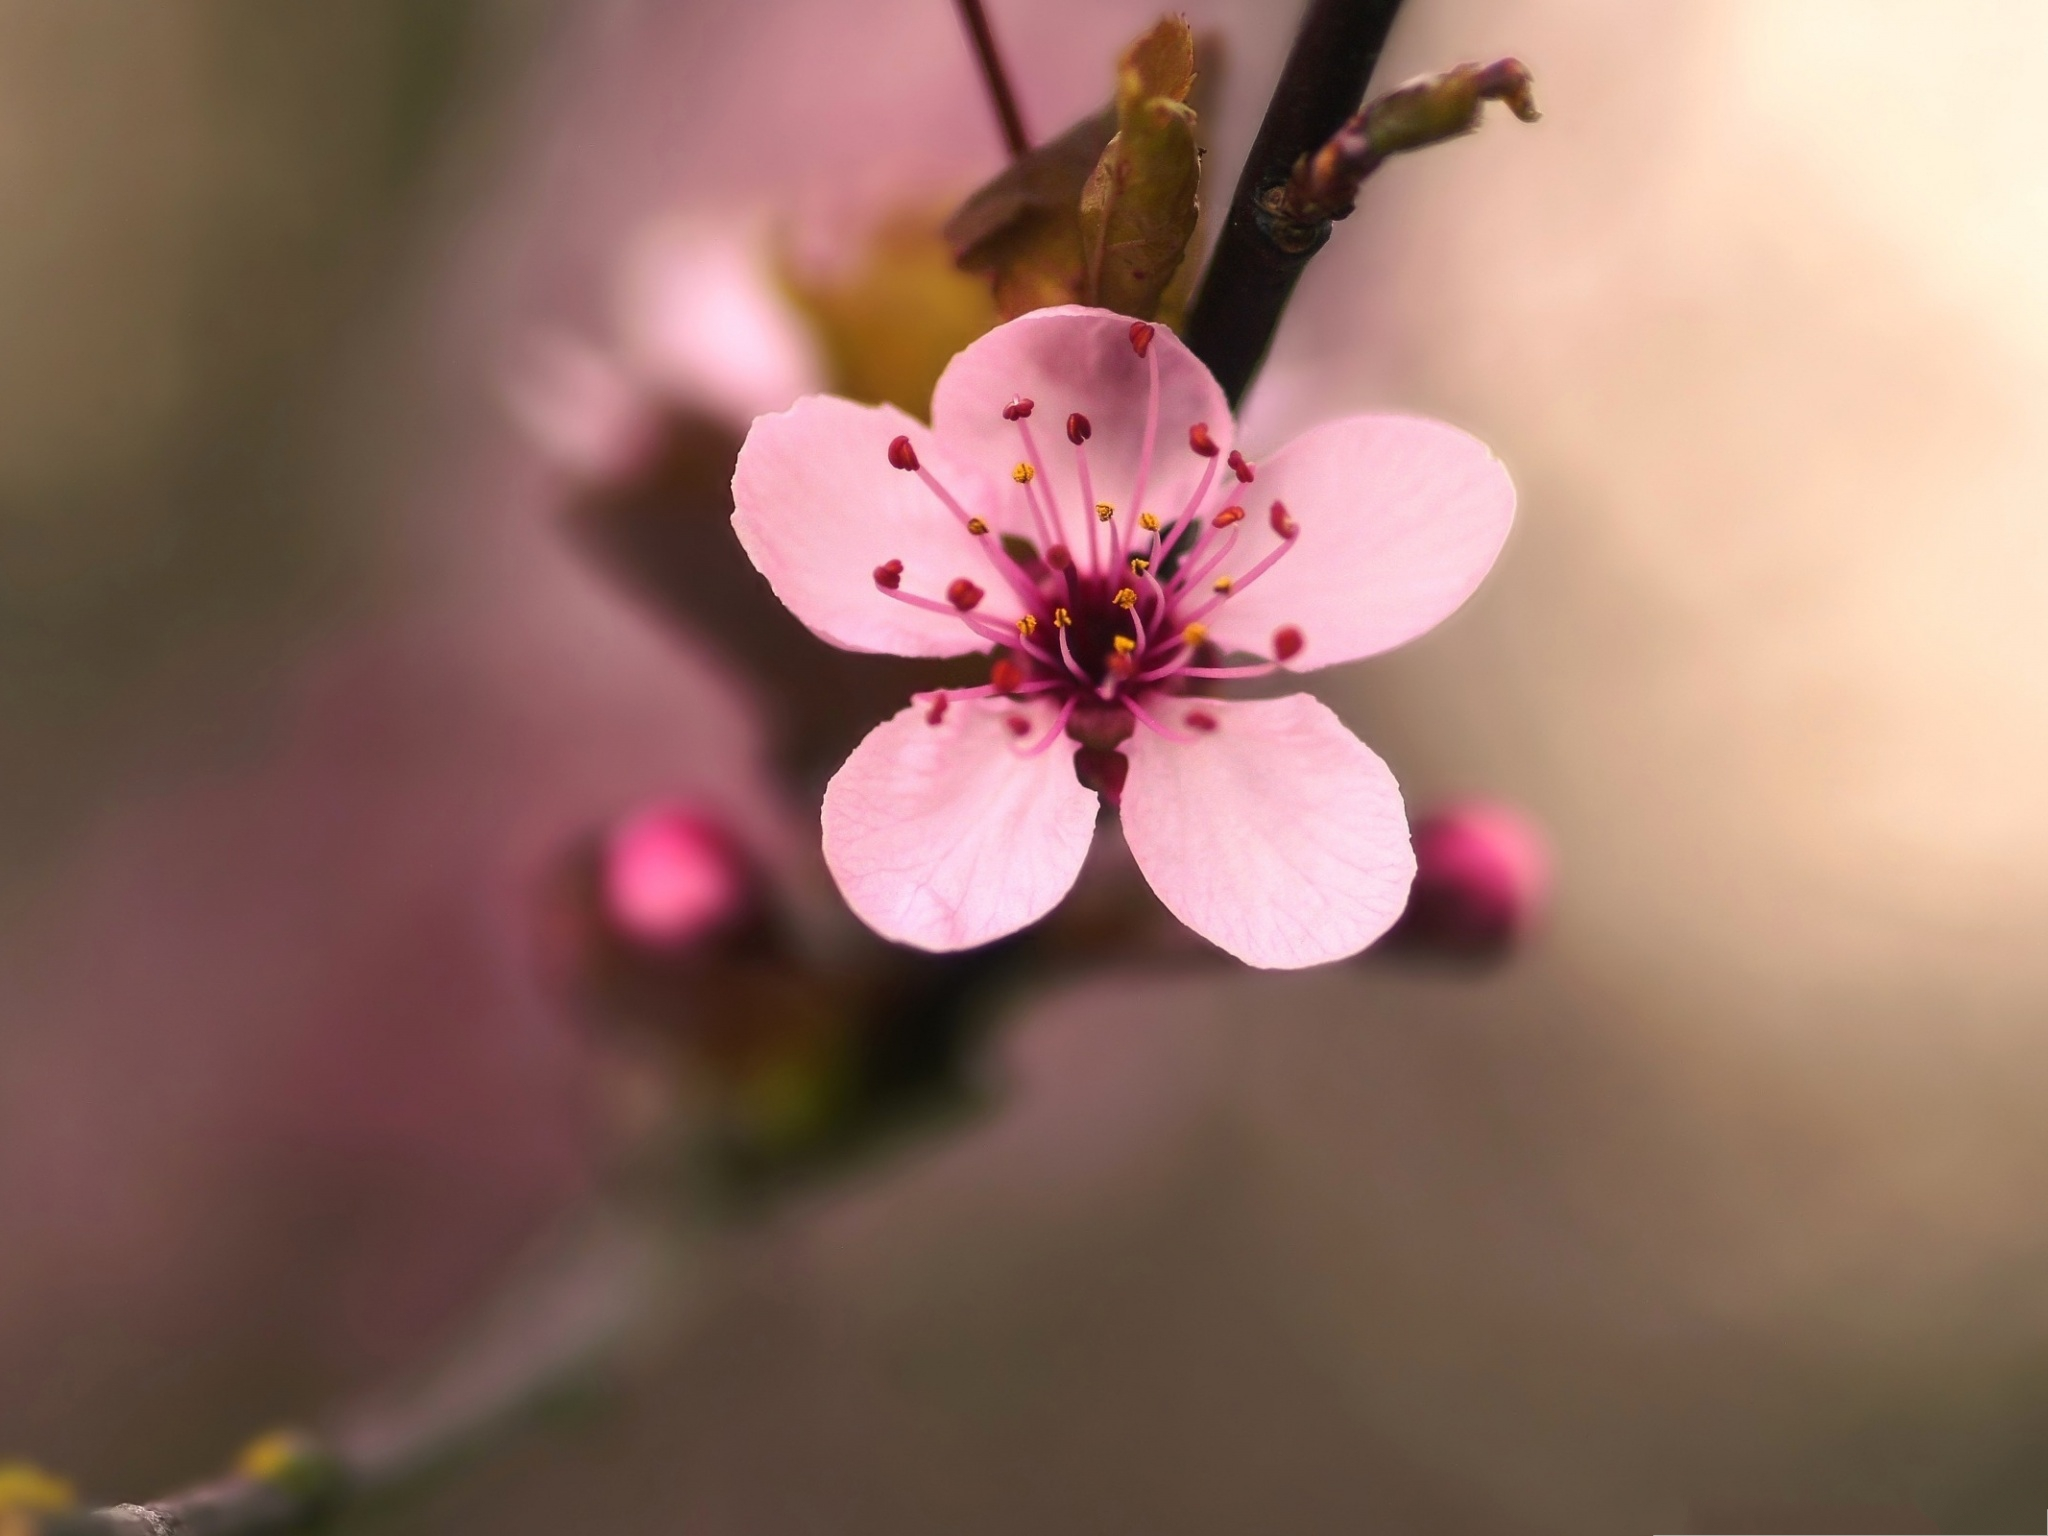 click to free download the wallpaper--Pink Cherry Flower Image, Lonely Cherry Flower in Bloom, Micro Focus 2048X1536 free wallpaper download